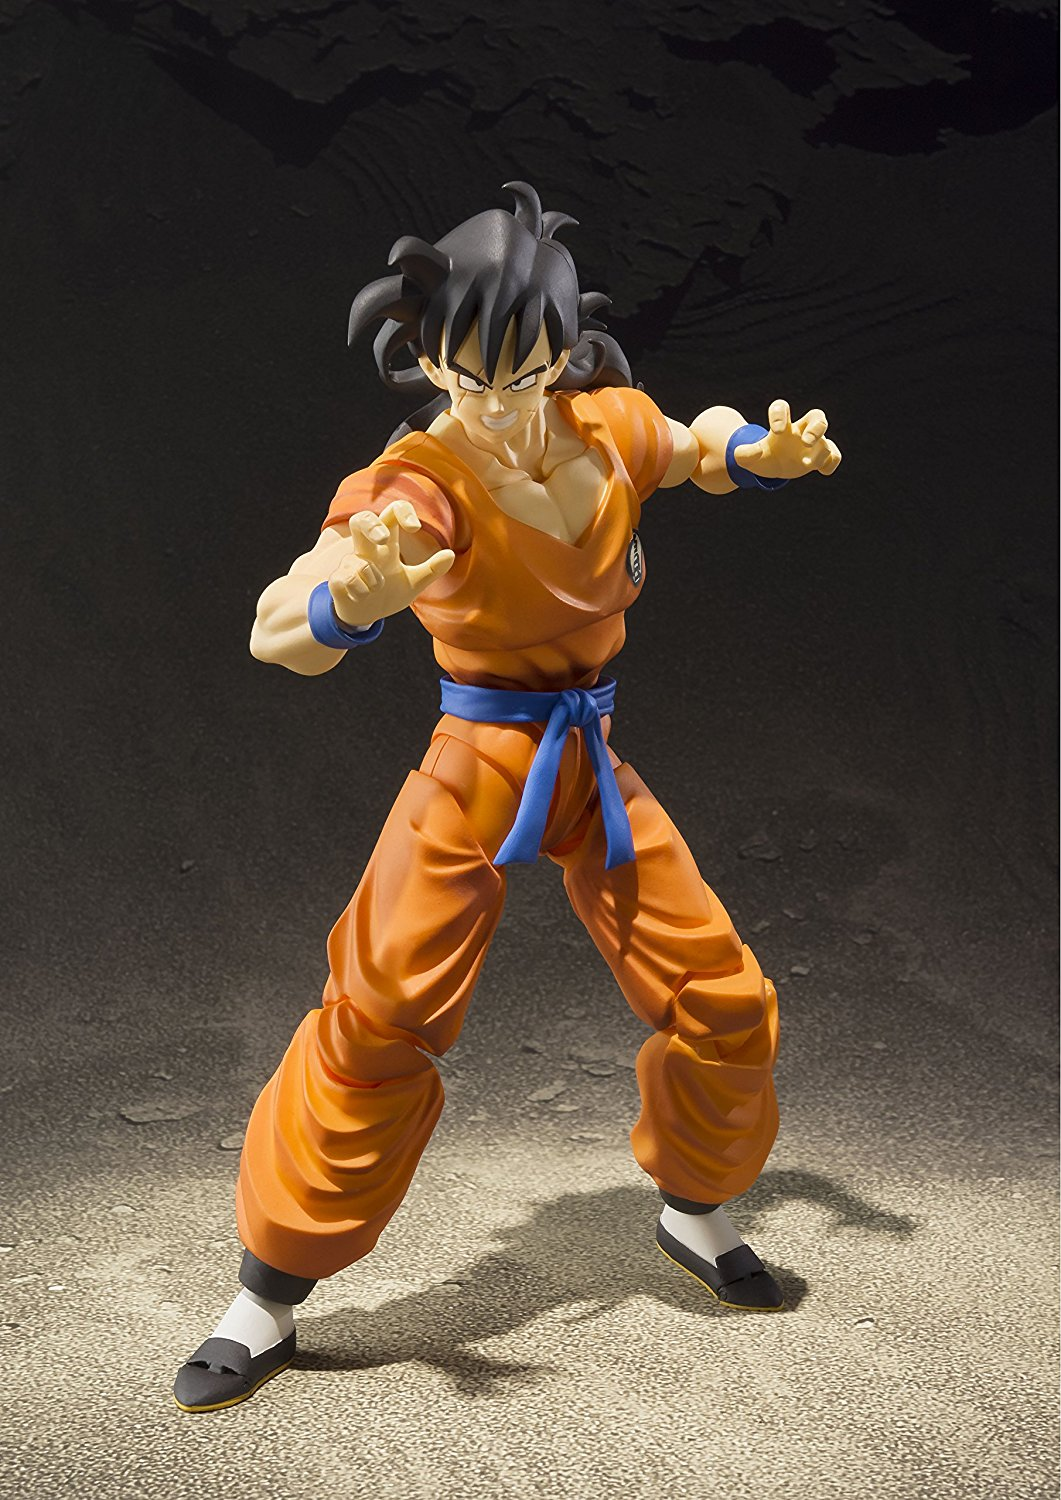 Dragon Ball Toys : Toy review s h figuarts yamcha dragon ball z action